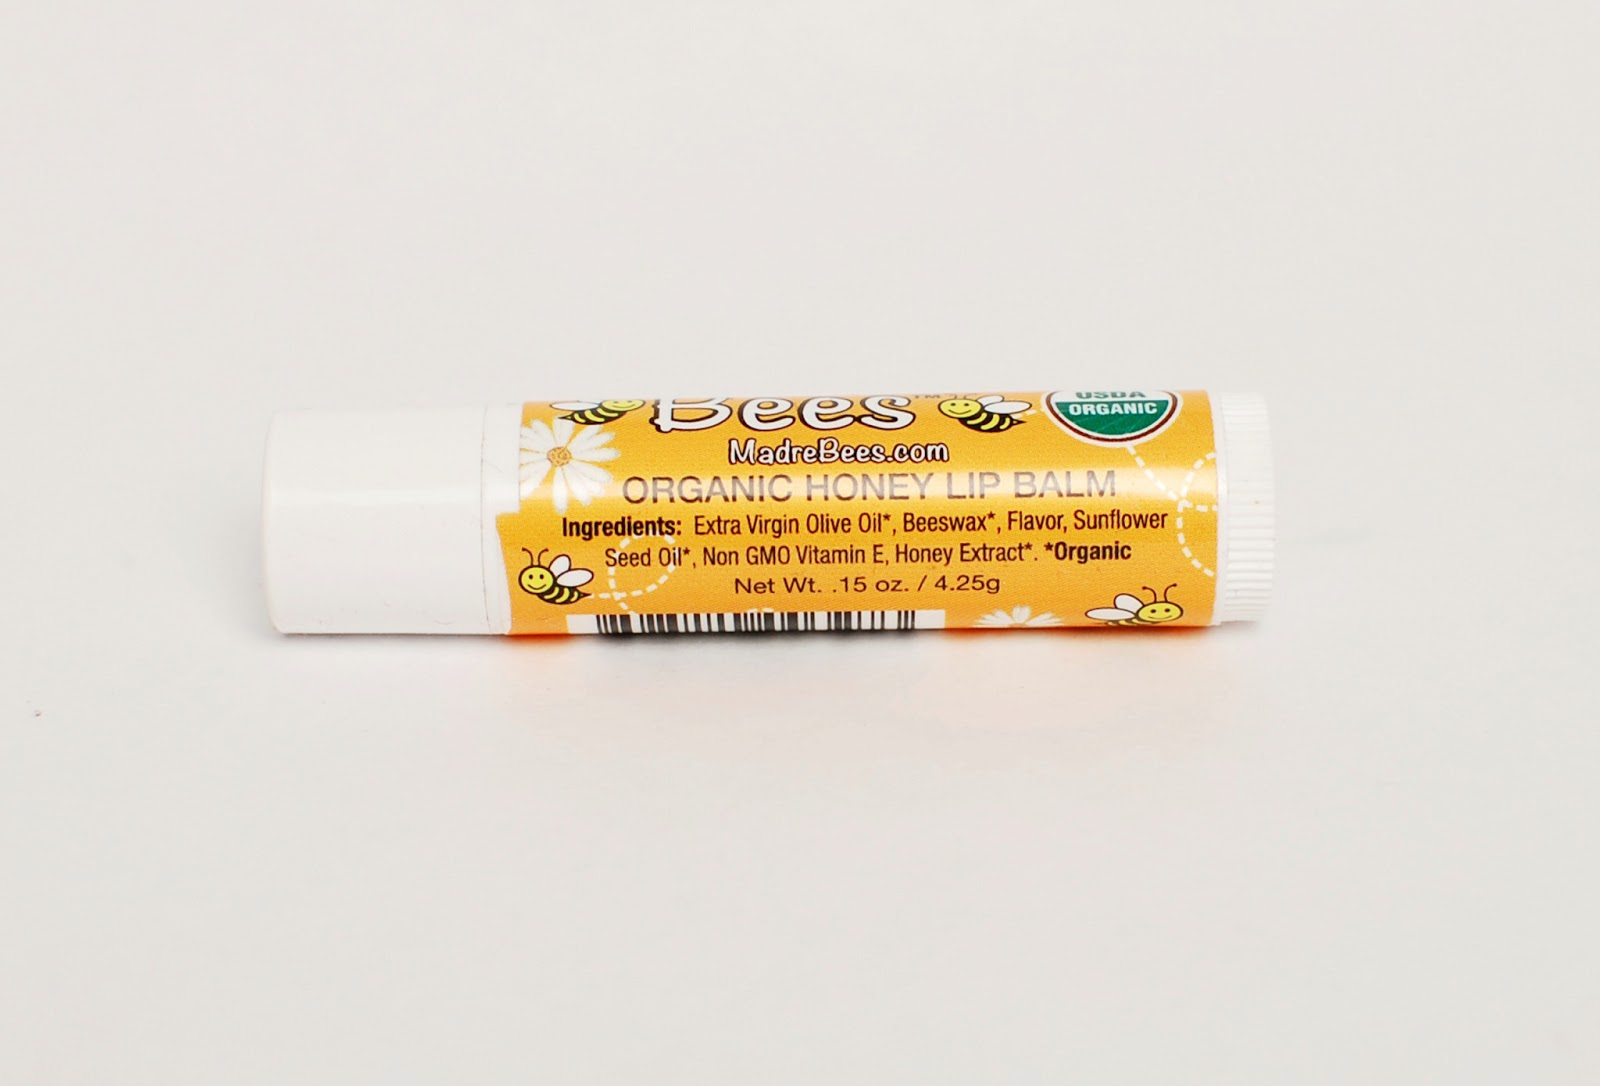 Madre Bees Organic Honey Lip Balm ingredients